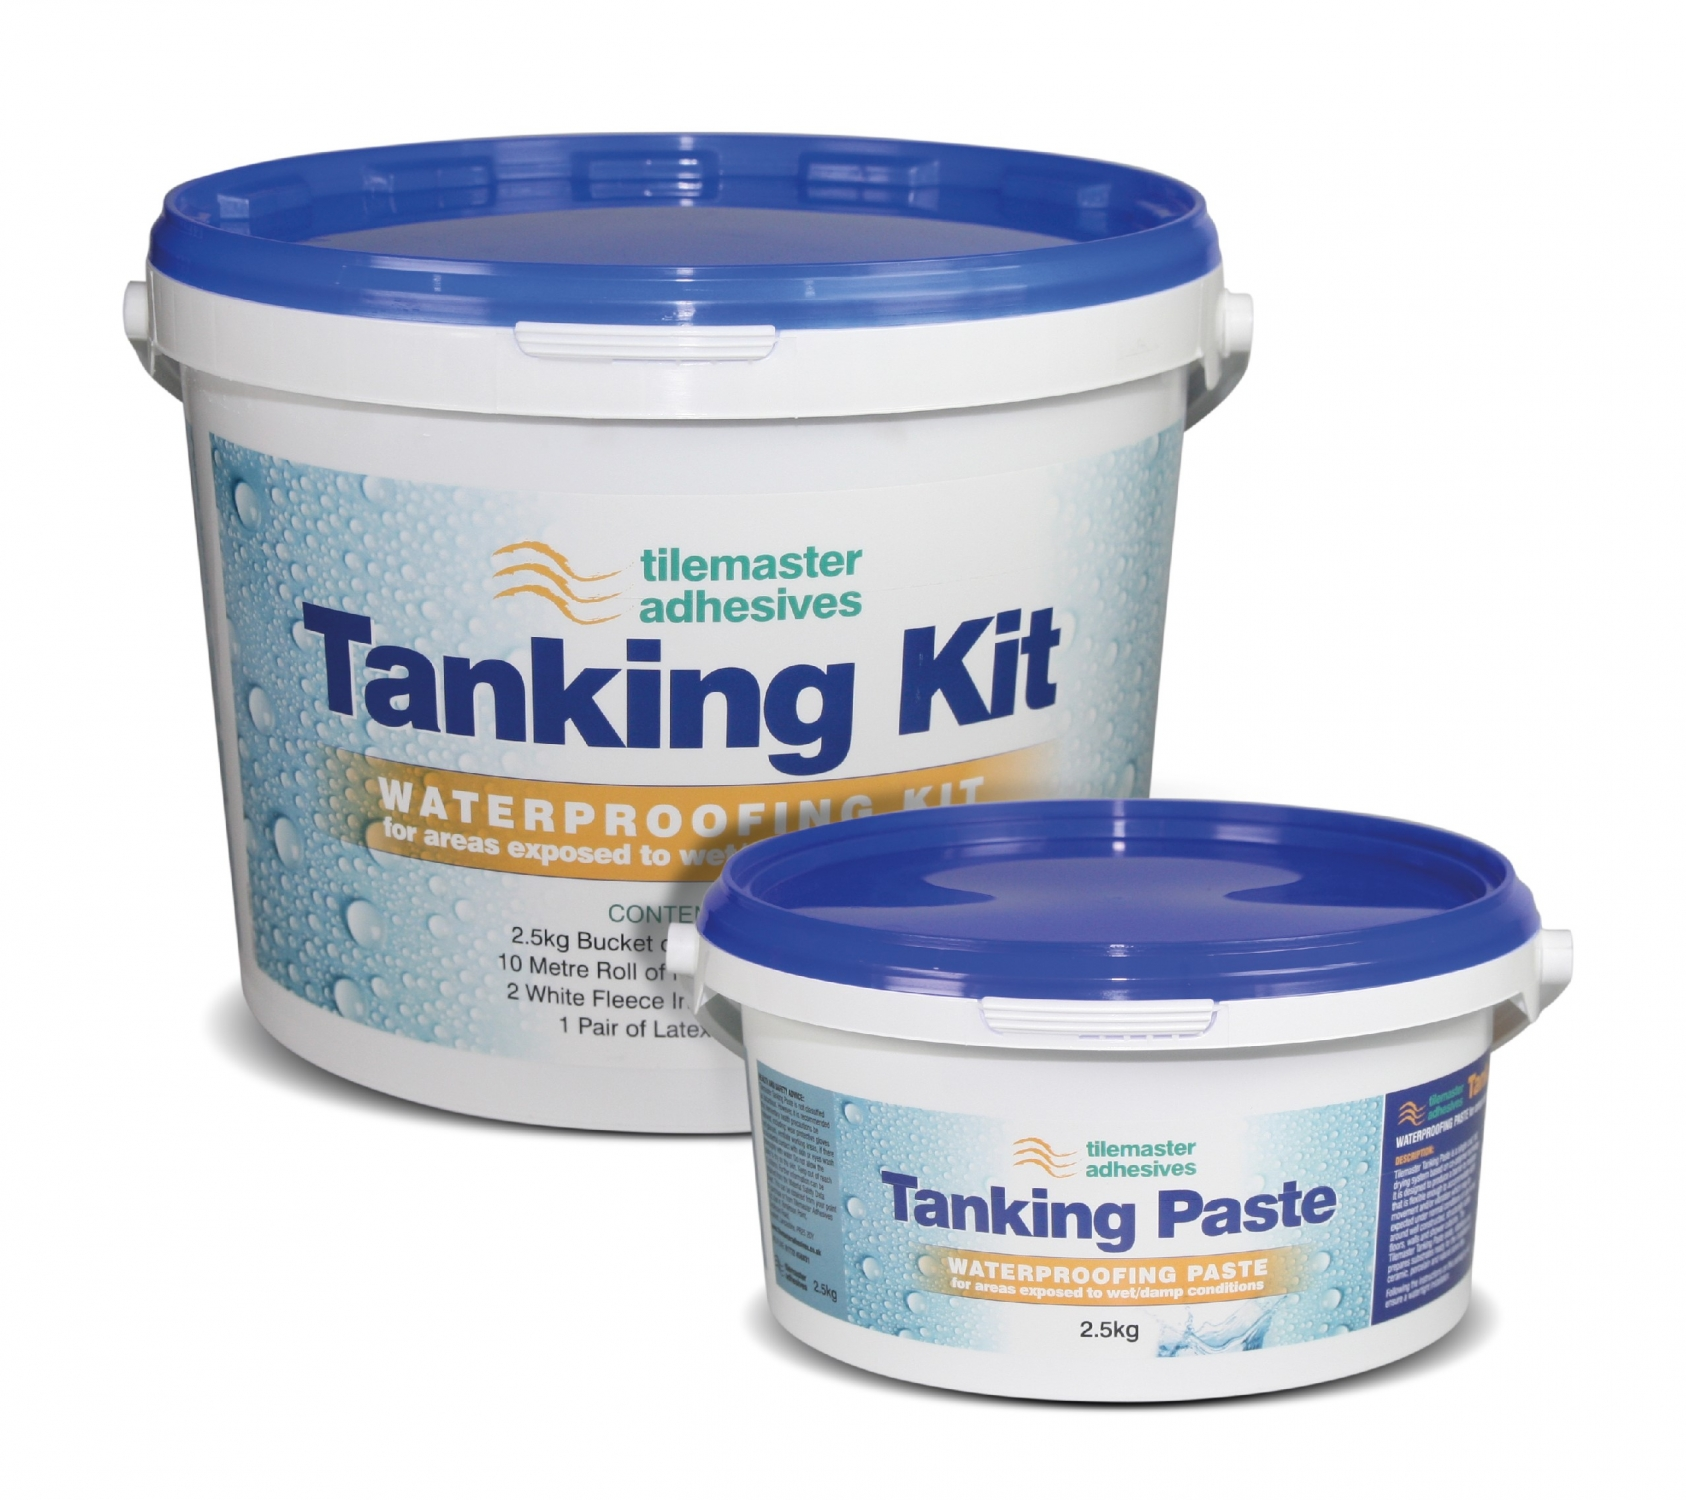 Tilemaster launches fast-drying Tanking Kit & Paste system